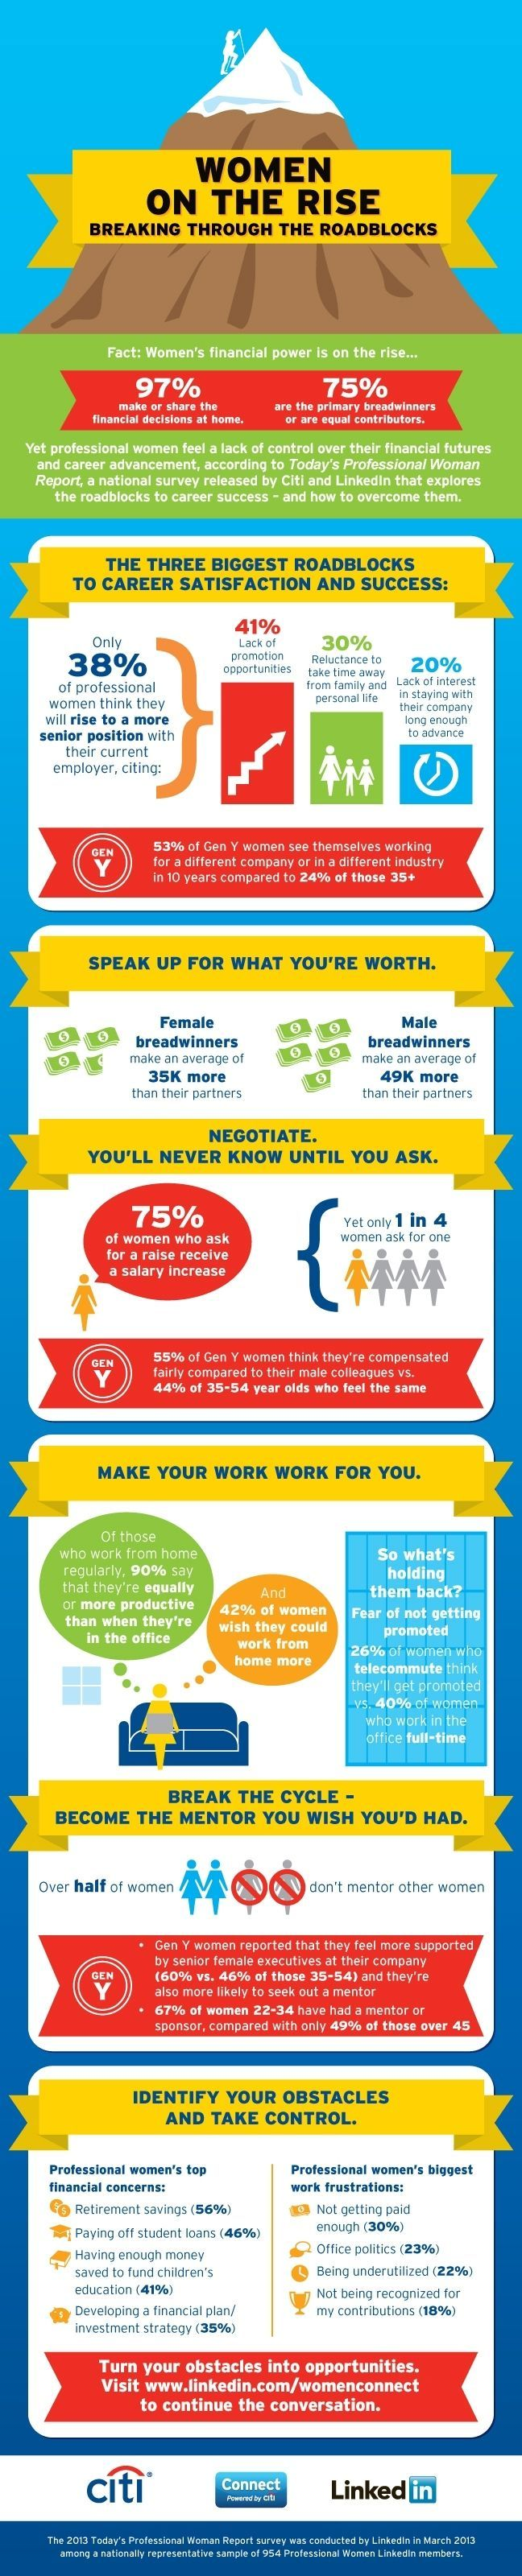 infographic midlife career change - Google Search